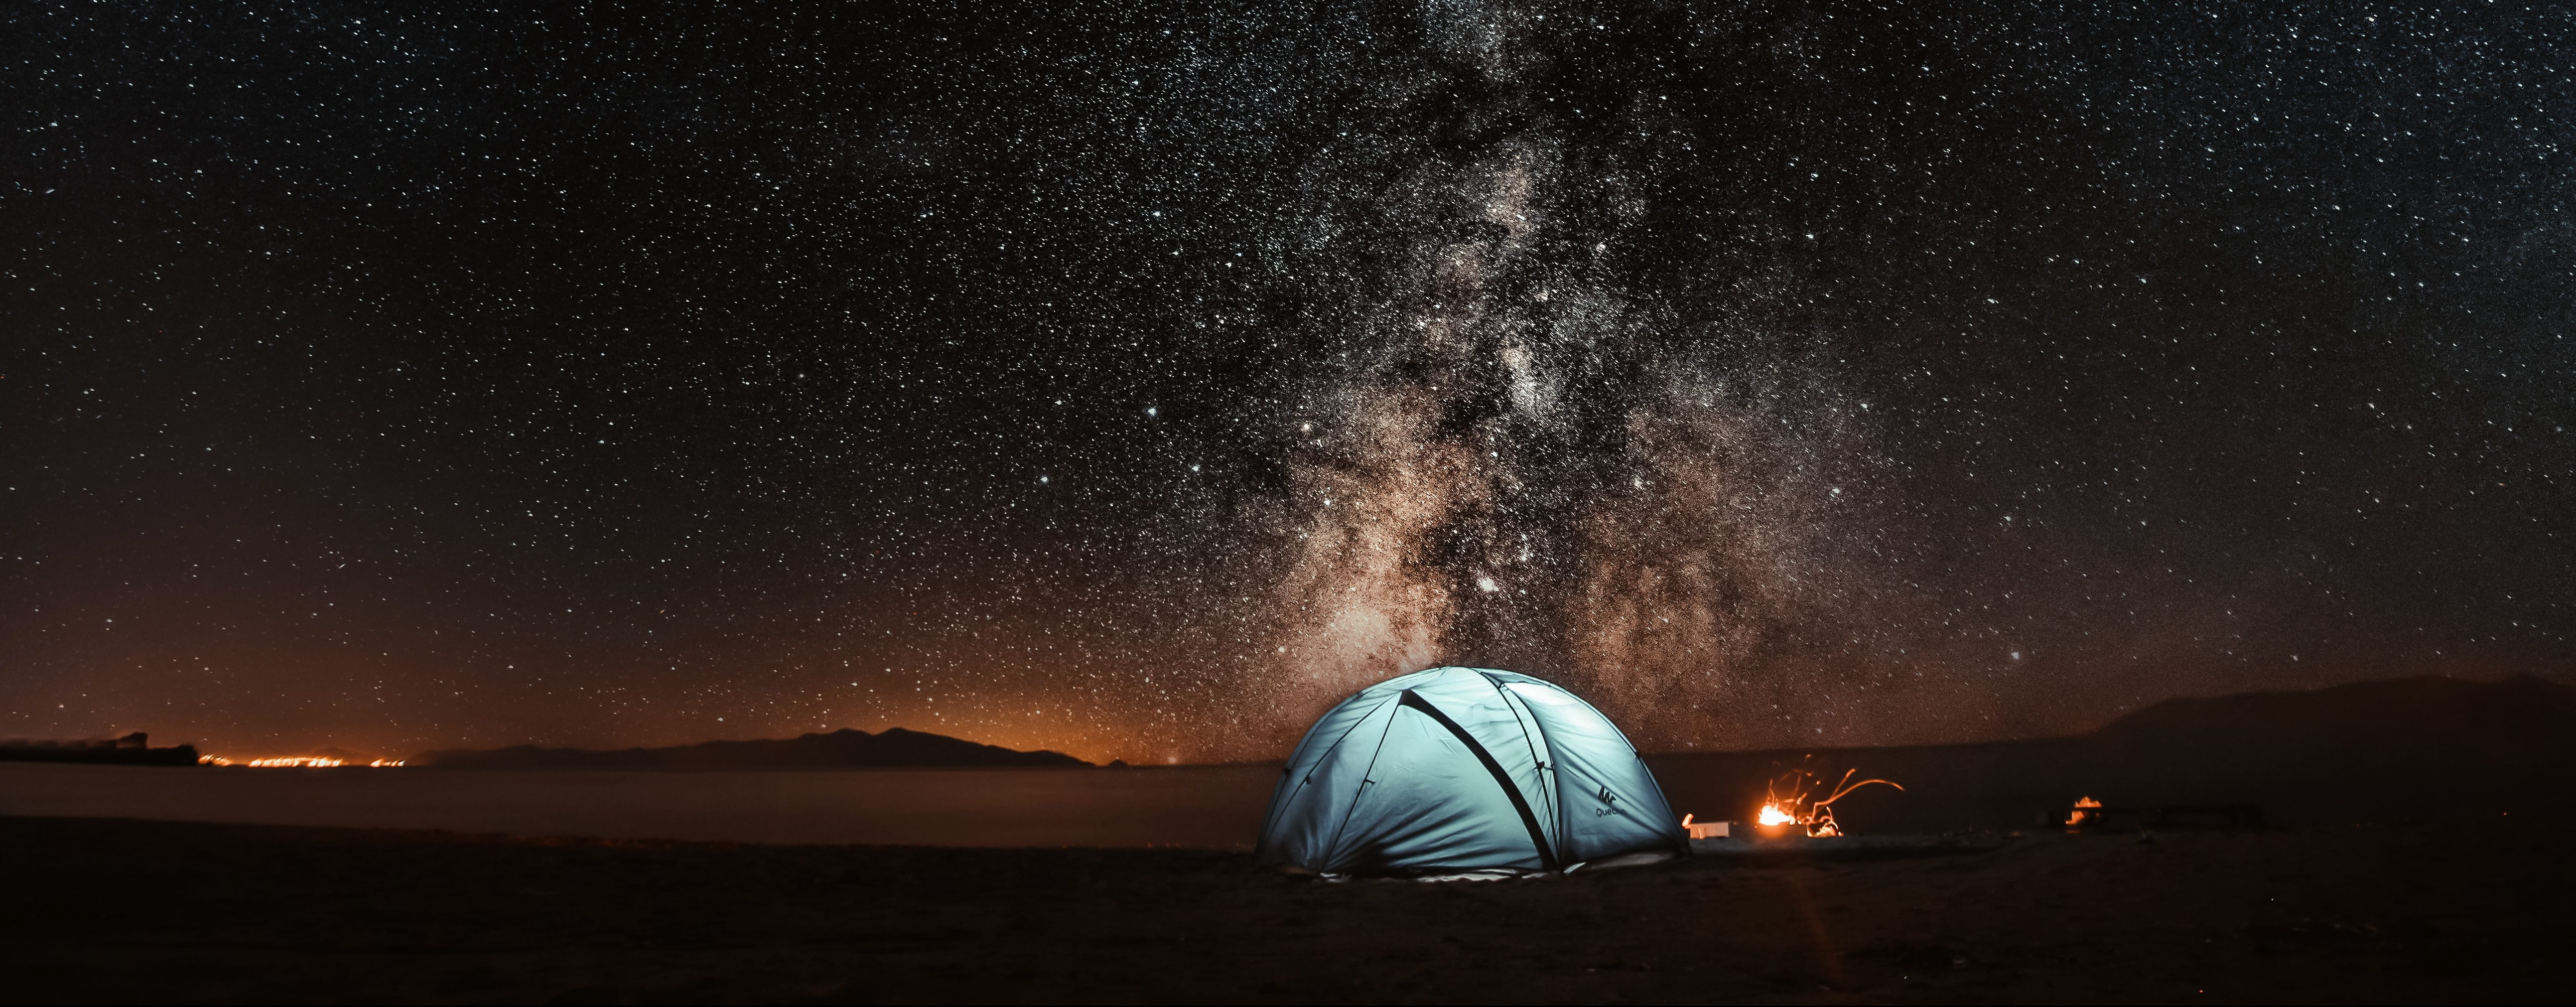 sleeping outside under the stars